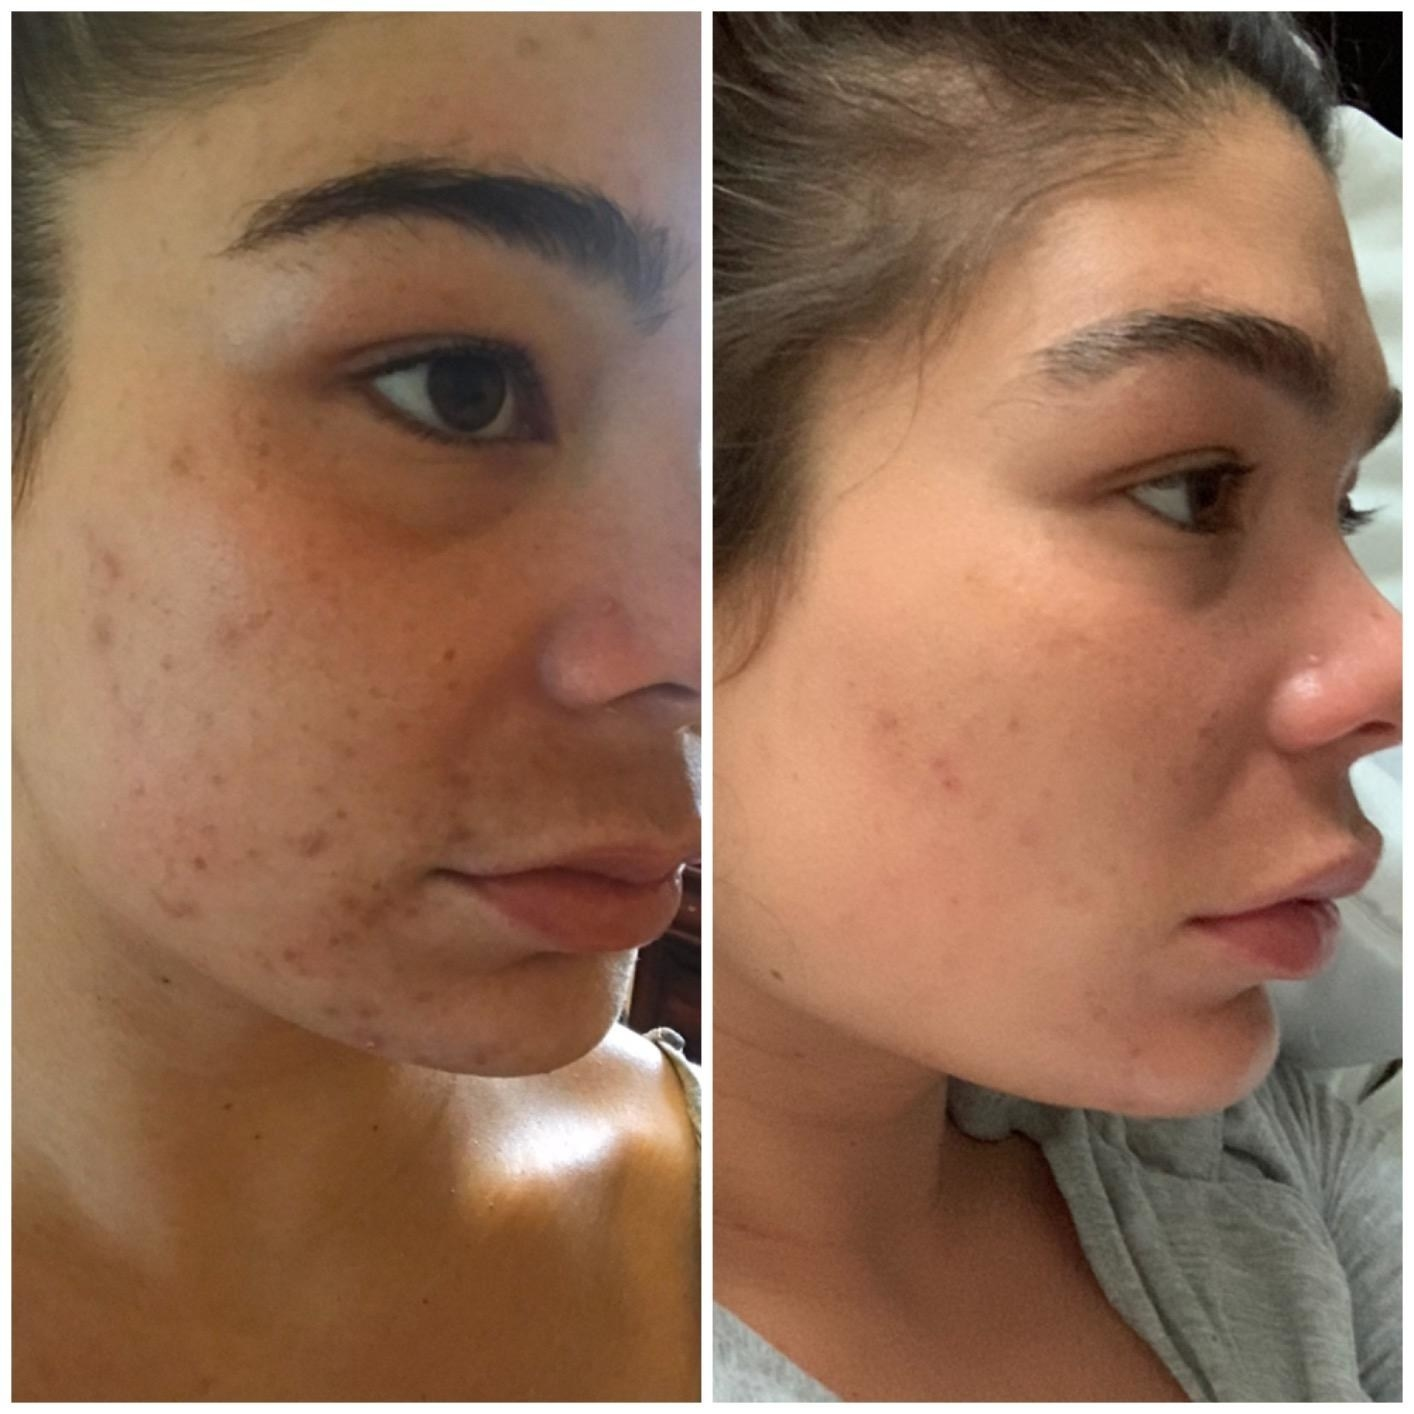 A reviewer with acne before using the mask and showing their acne cleared up after three months of use.